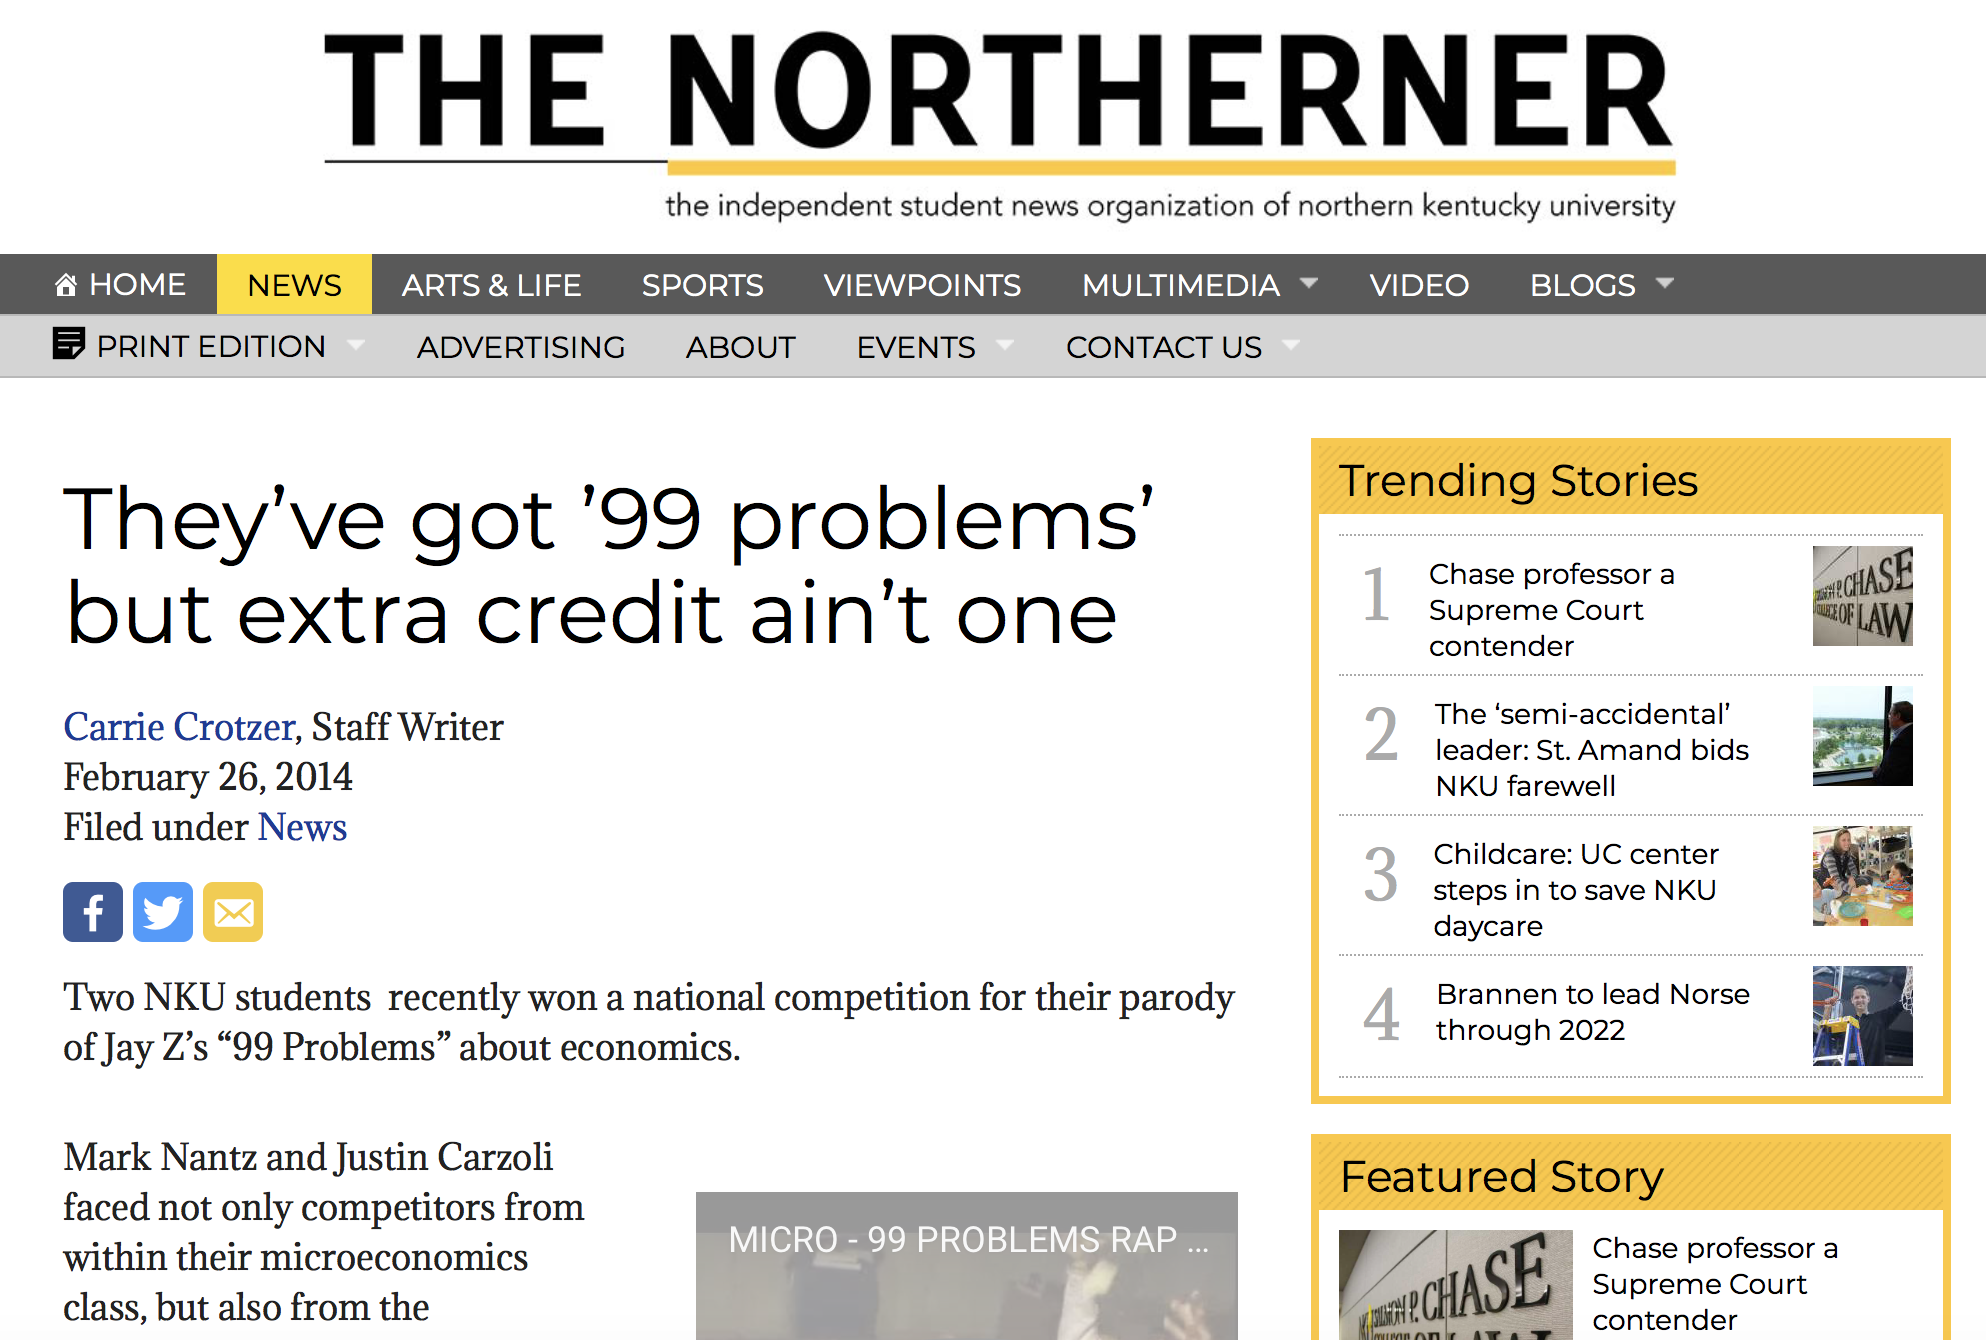 They've got '99 problems' but extra credit ain't one - Read More